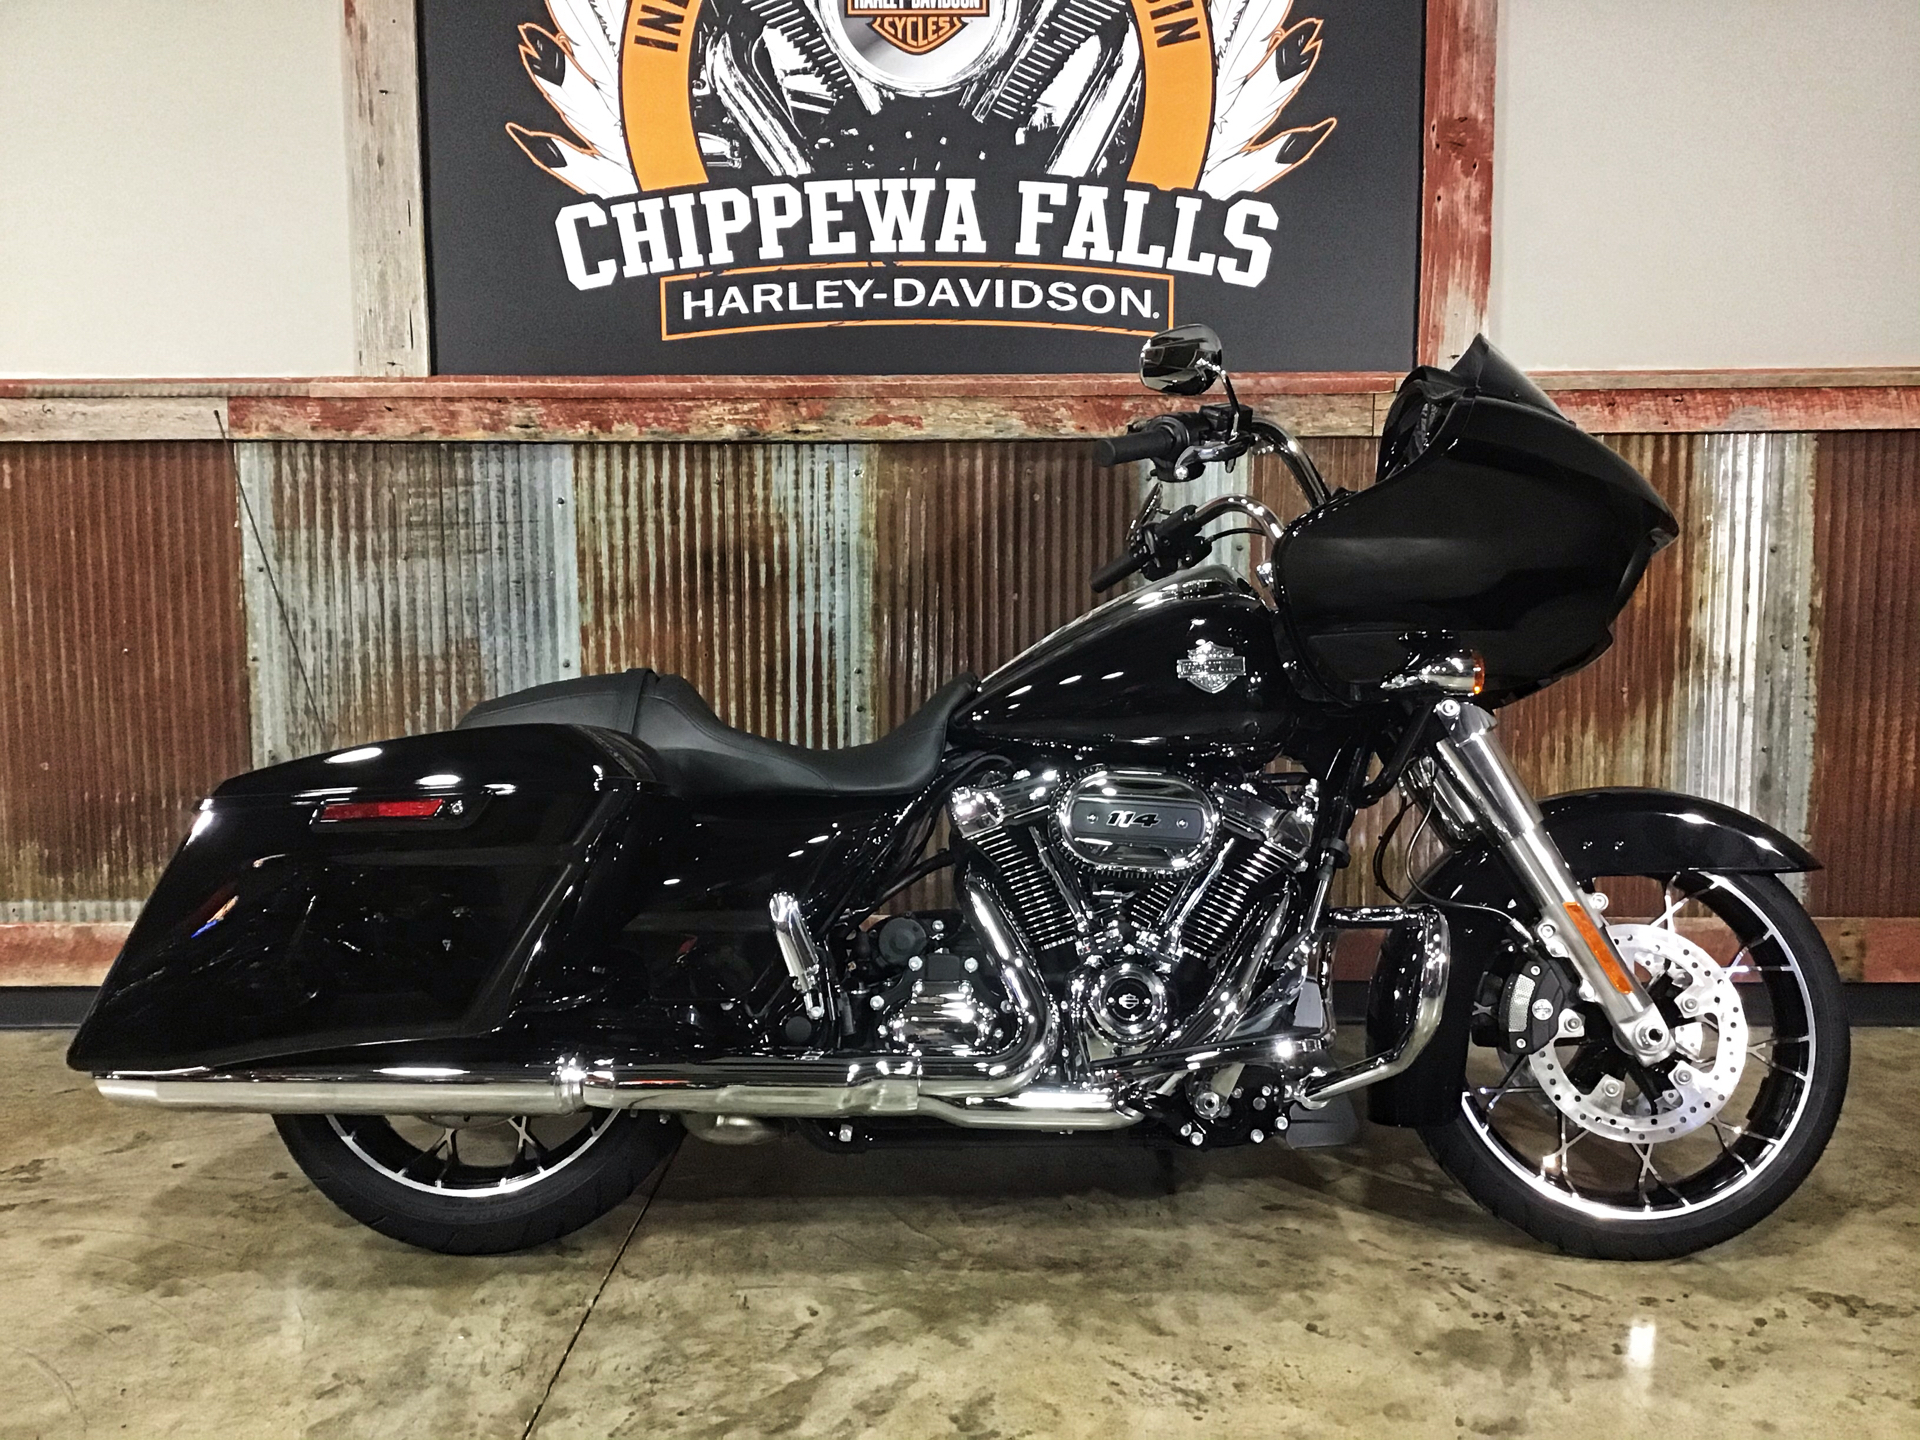 2021 harley davidson road glide special in chippewa falls wisconsin